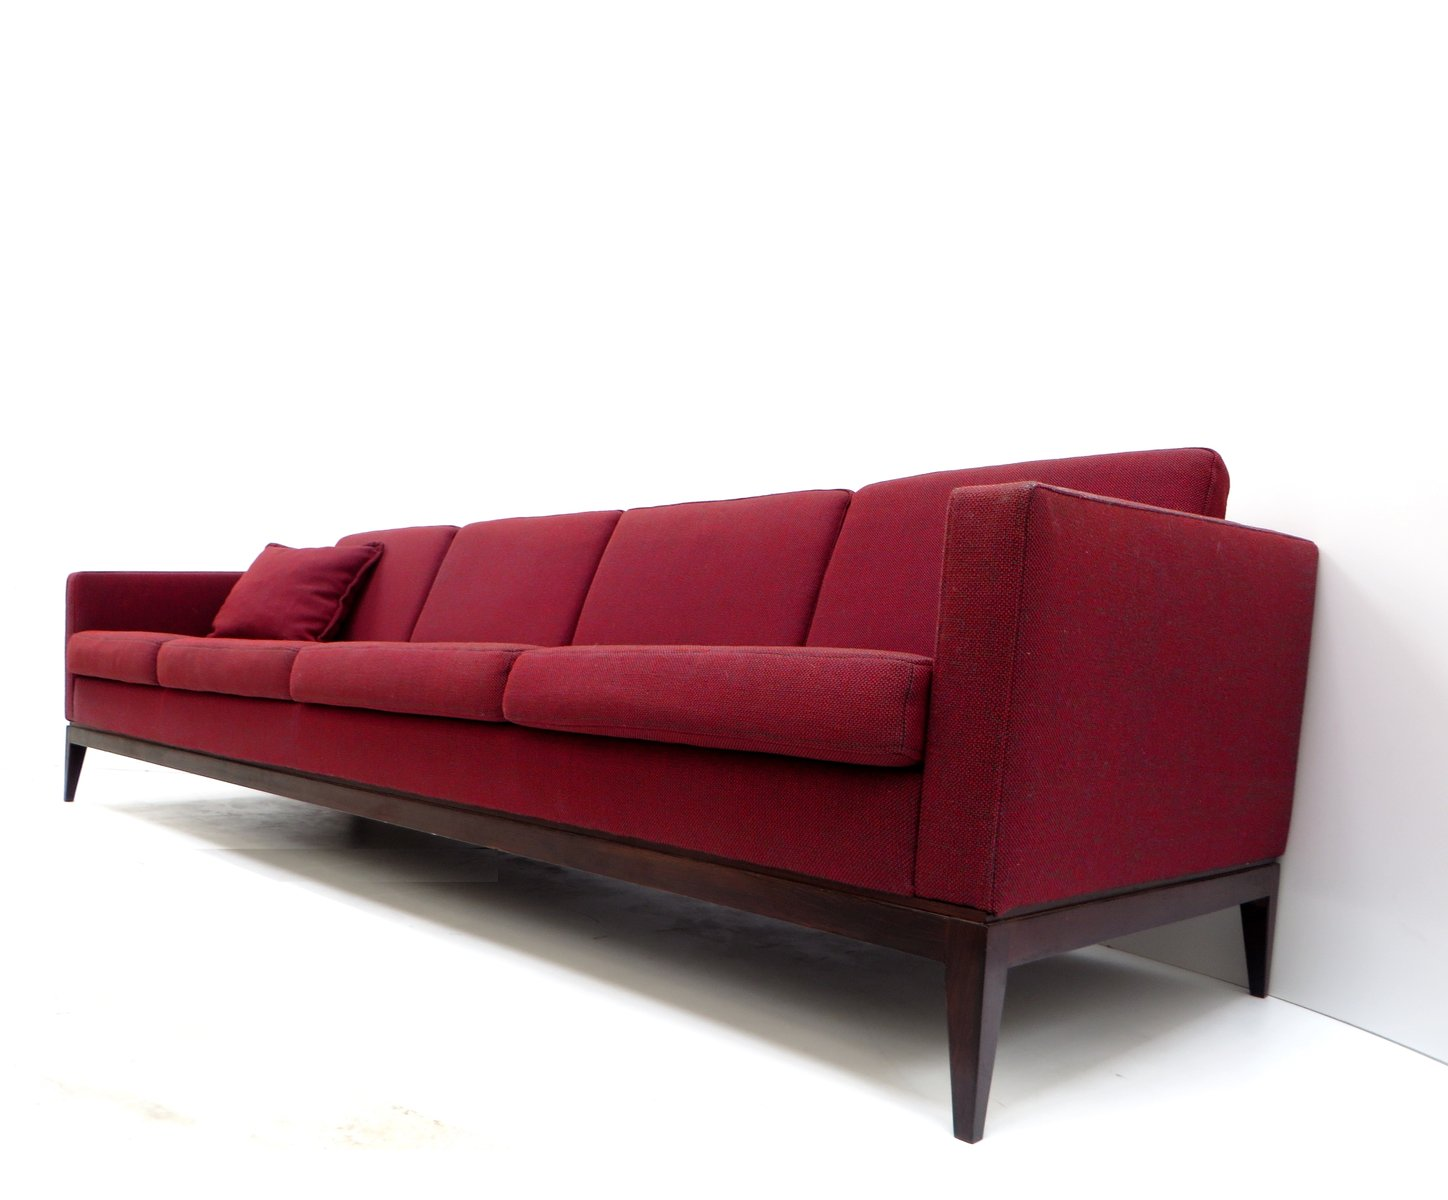 Vintage Burgundy Four Seater Sofa for sale at Pamono